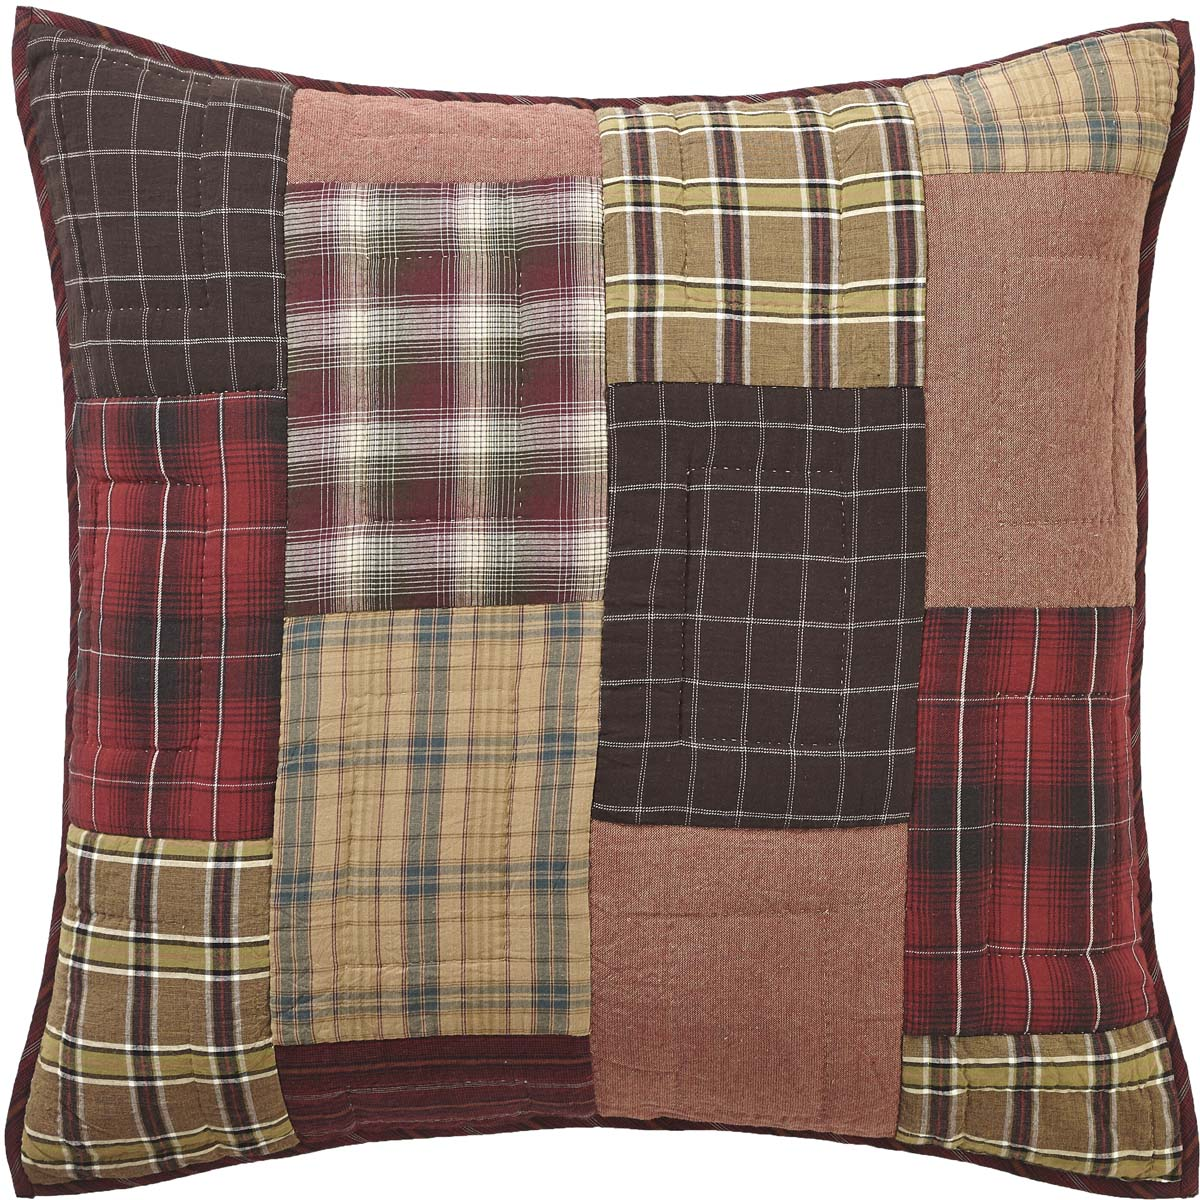 Crimson Red Rustic & Lodge Bedding Wyatt Cotton Hand Quilted Patchwork Euro Sham